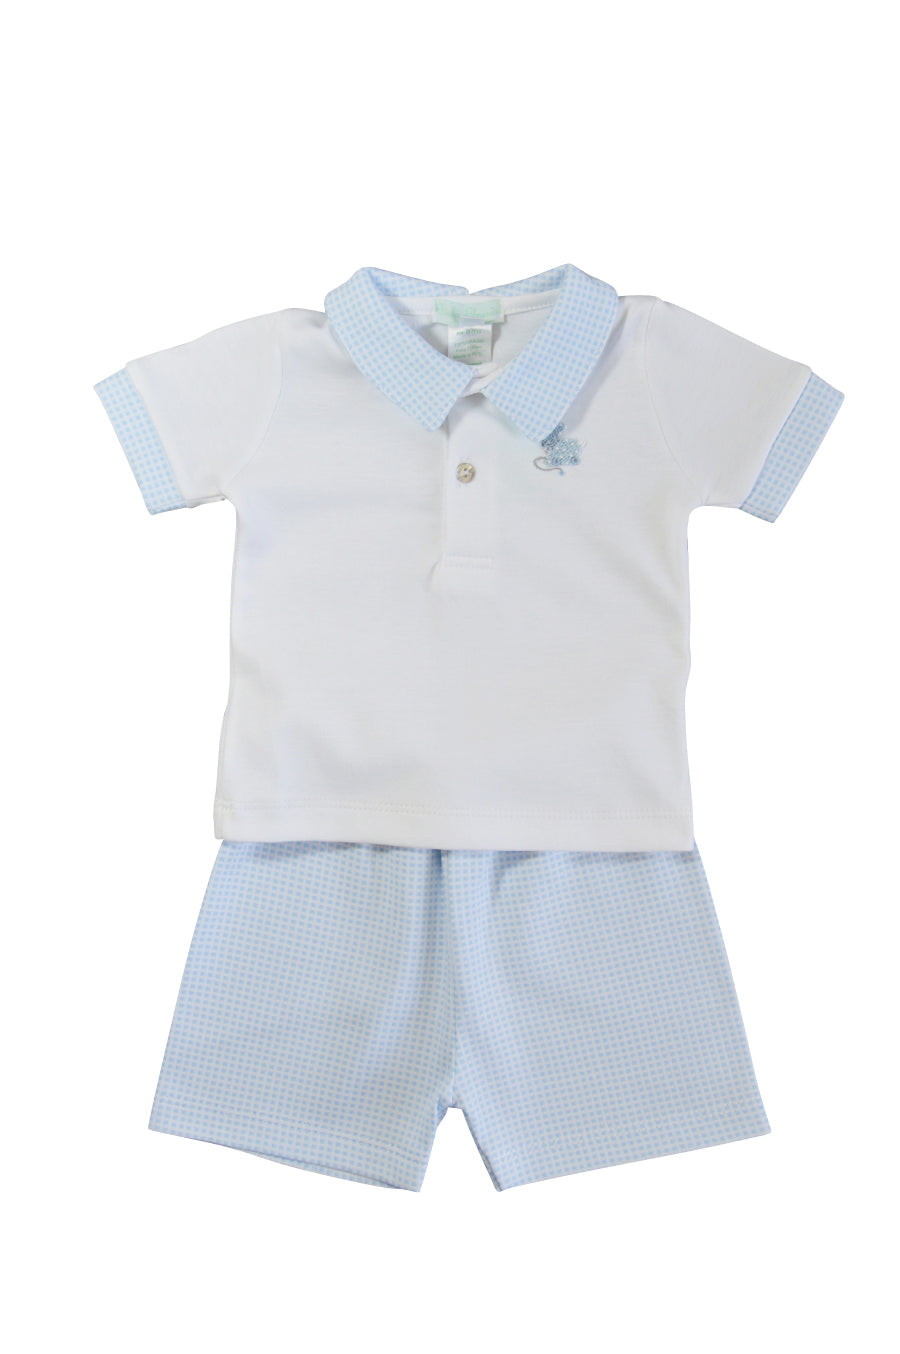 Baby Boy's Checkered Bunny Short Set - Little Threads Inc. Children's Clothing